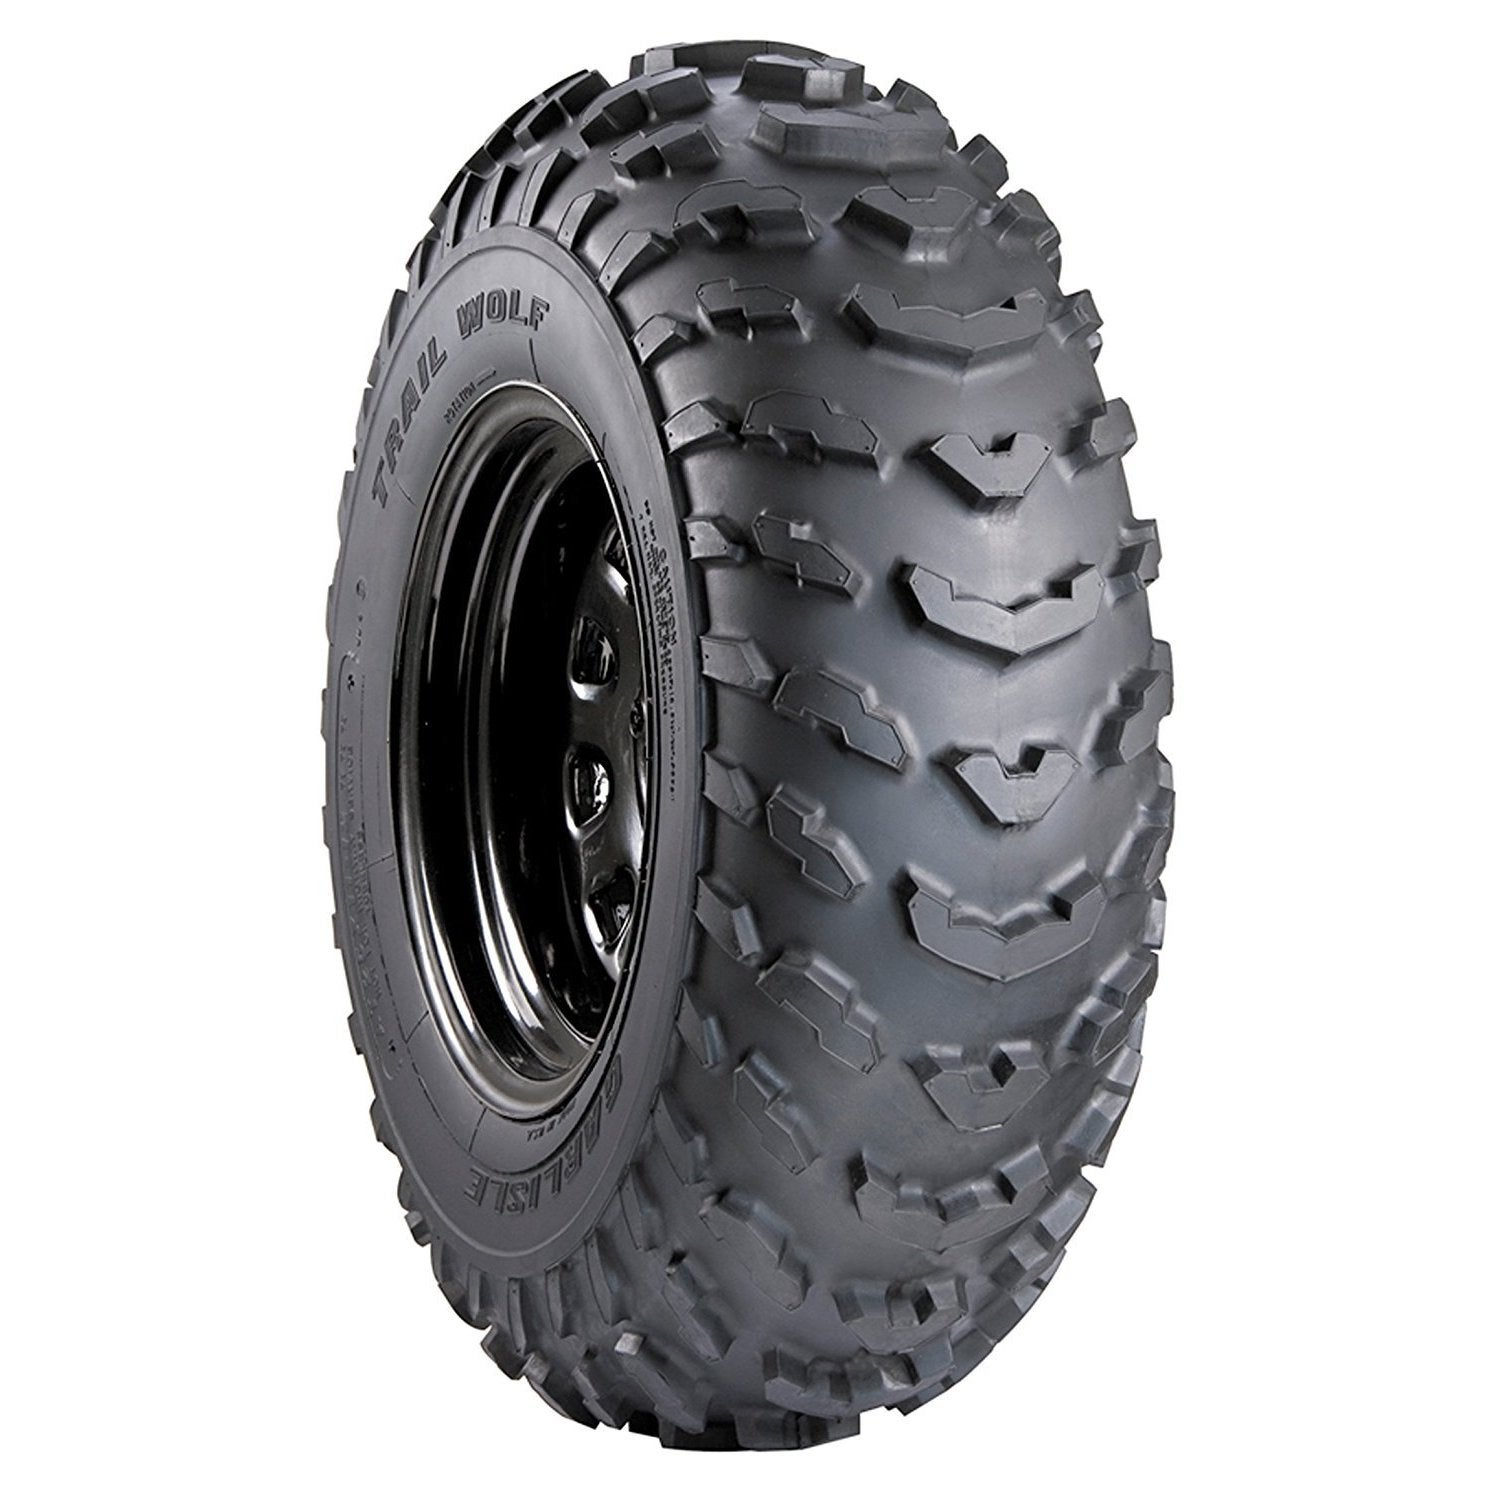 Carlisle Trail Wolf ATV Tire - 19X7-8 1* (Black)